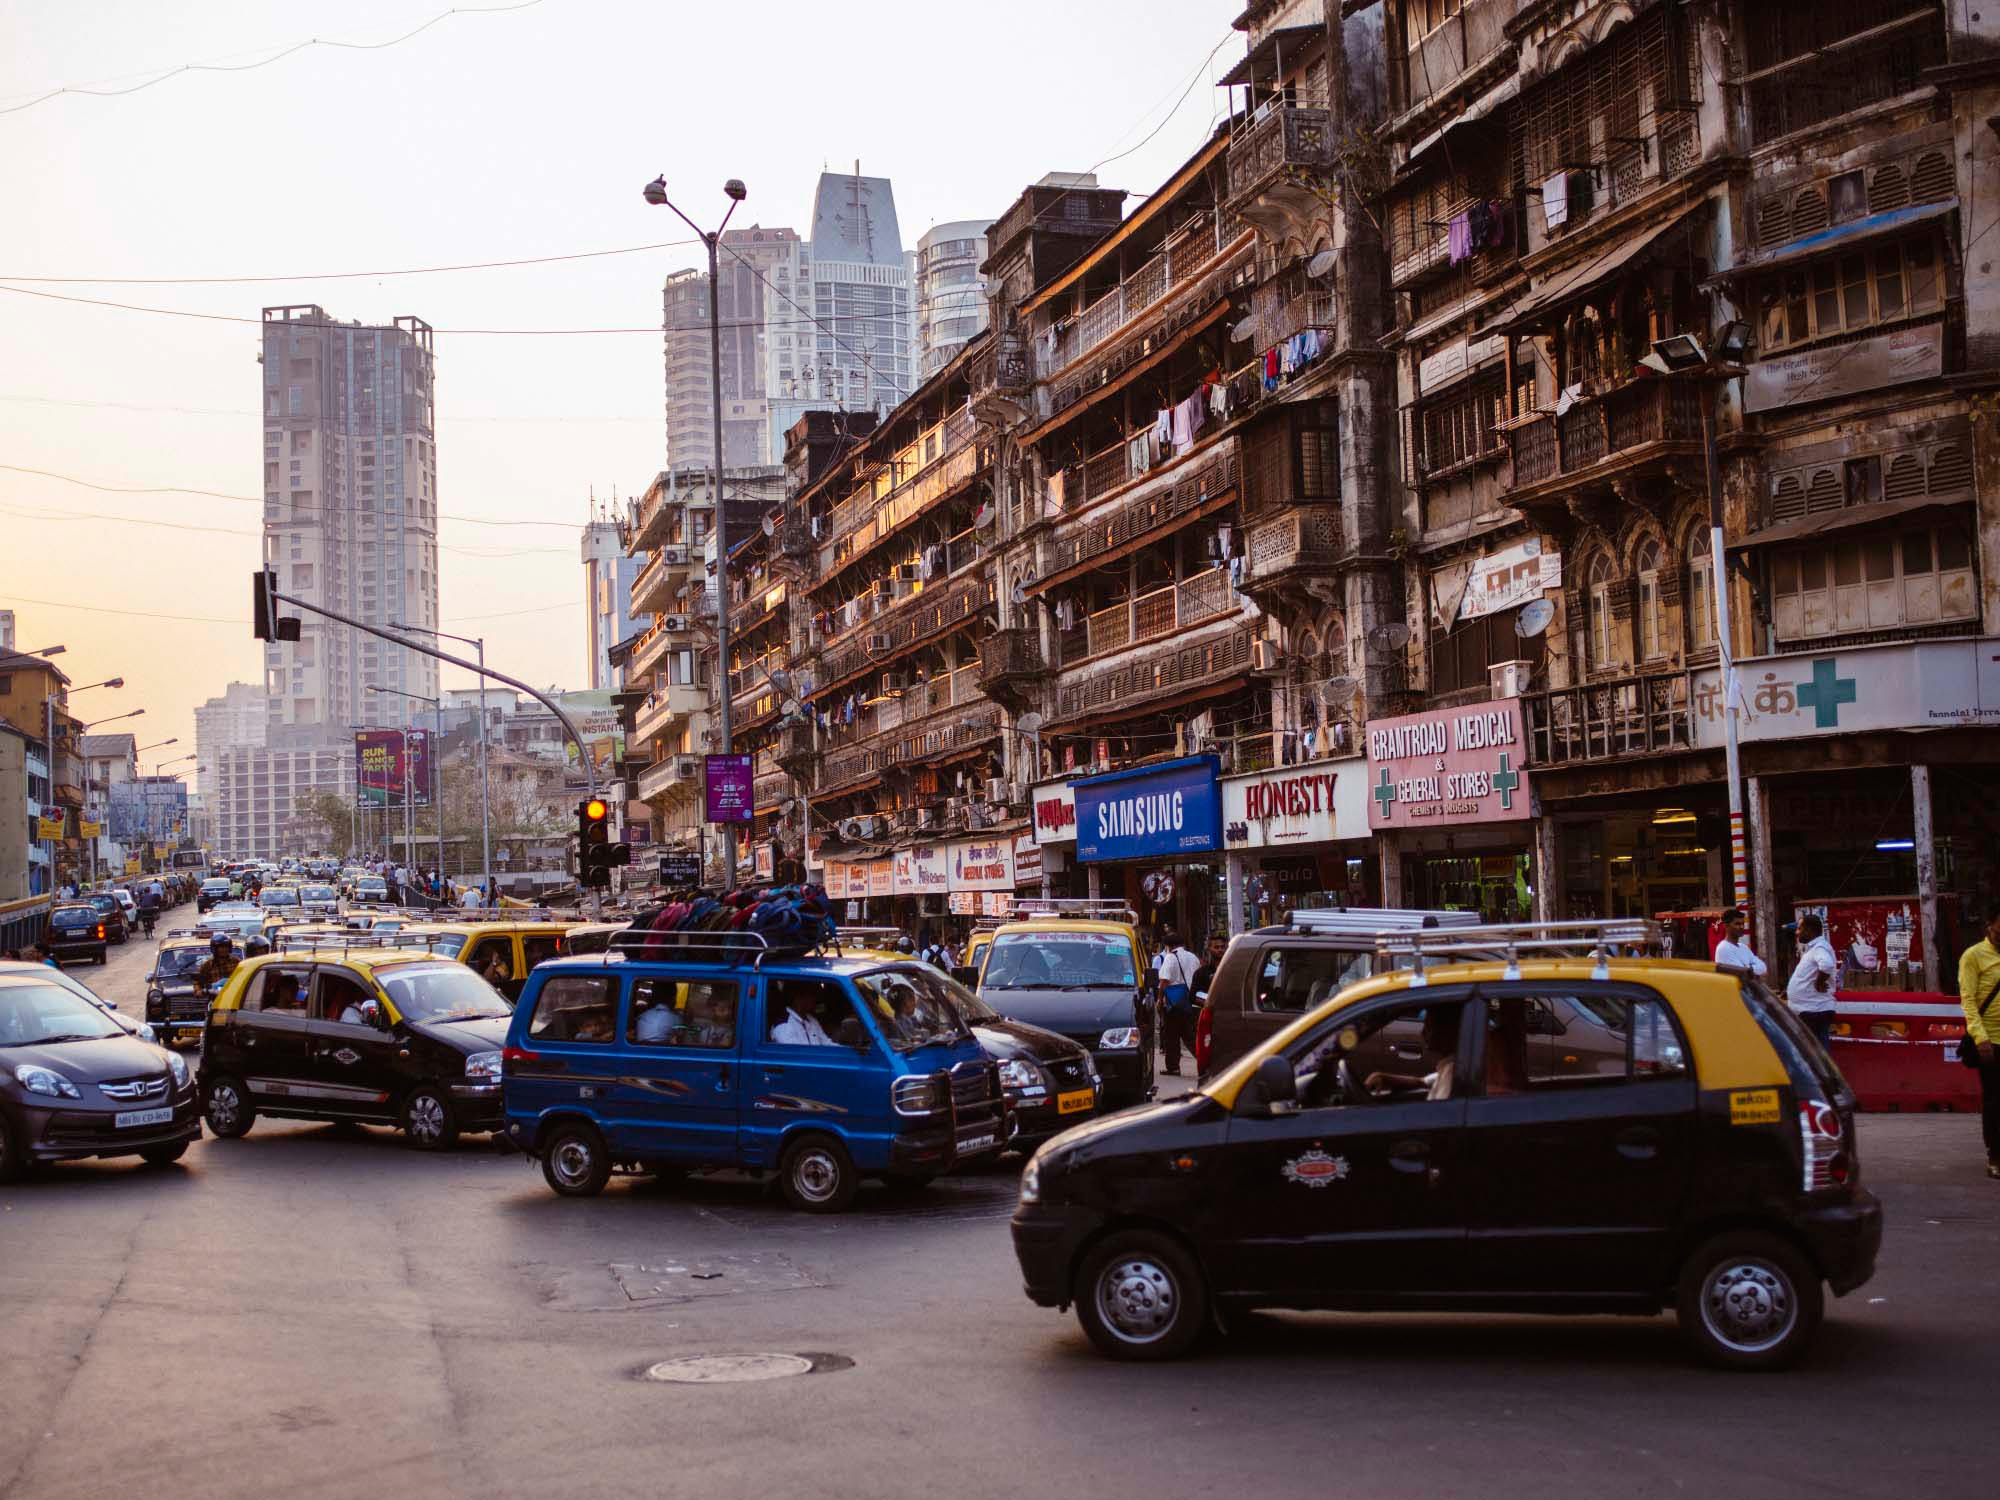 The starting point of our trip around the world: Bombay, India.